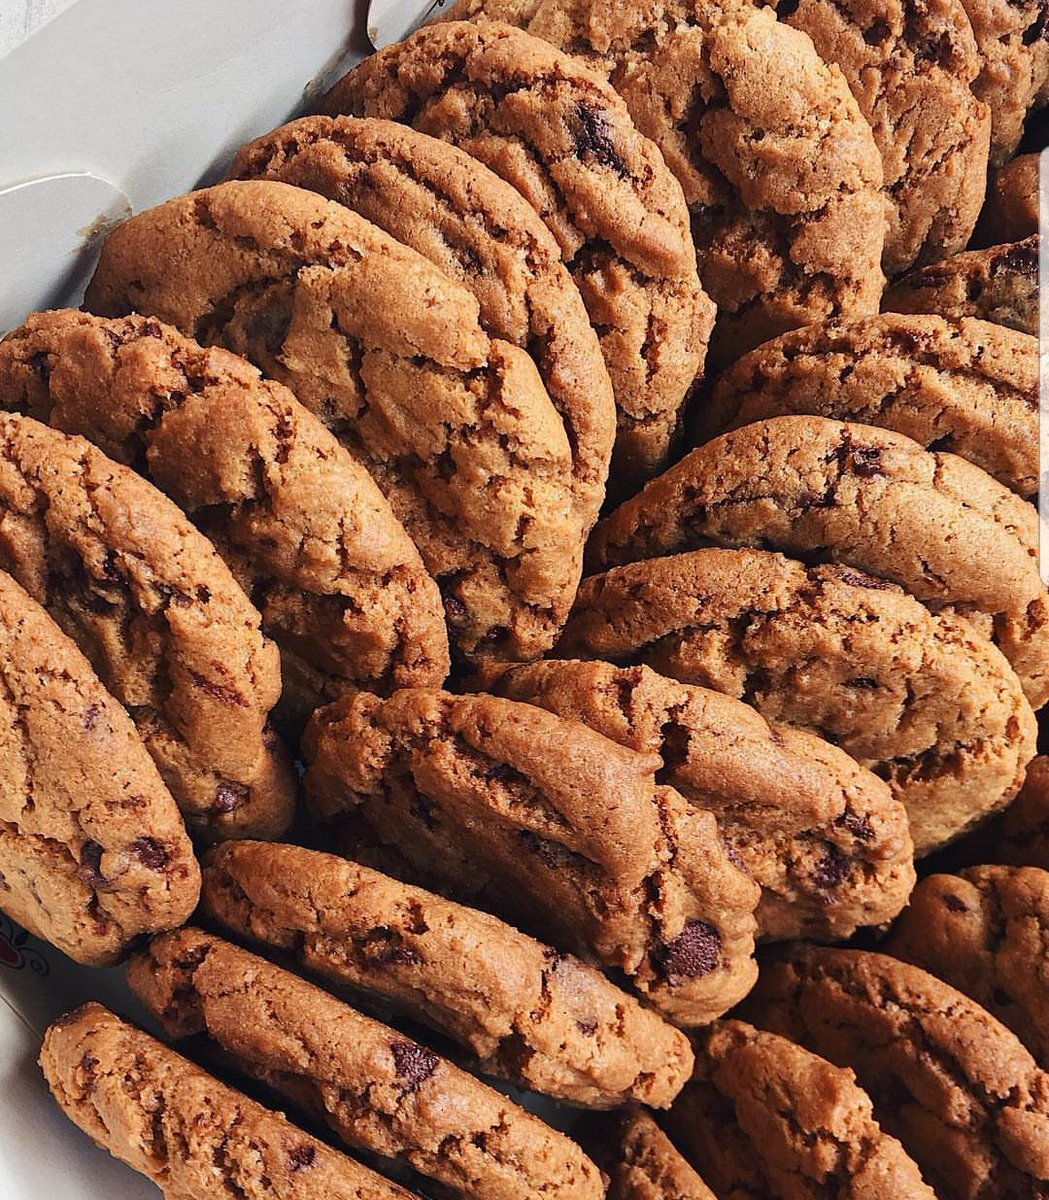 Chocolate Chip Cookies!  These cookies are perfect  . Our cookies are not too soft nor too hard; it is deliciously chewy as cookies should be  . Need a pack or 2 (trust me you will ask for more o) delivered to you, Call us on 07082965649 #cookies #lagos<br>http://pic.twitter.com/u2JCrpHNPR